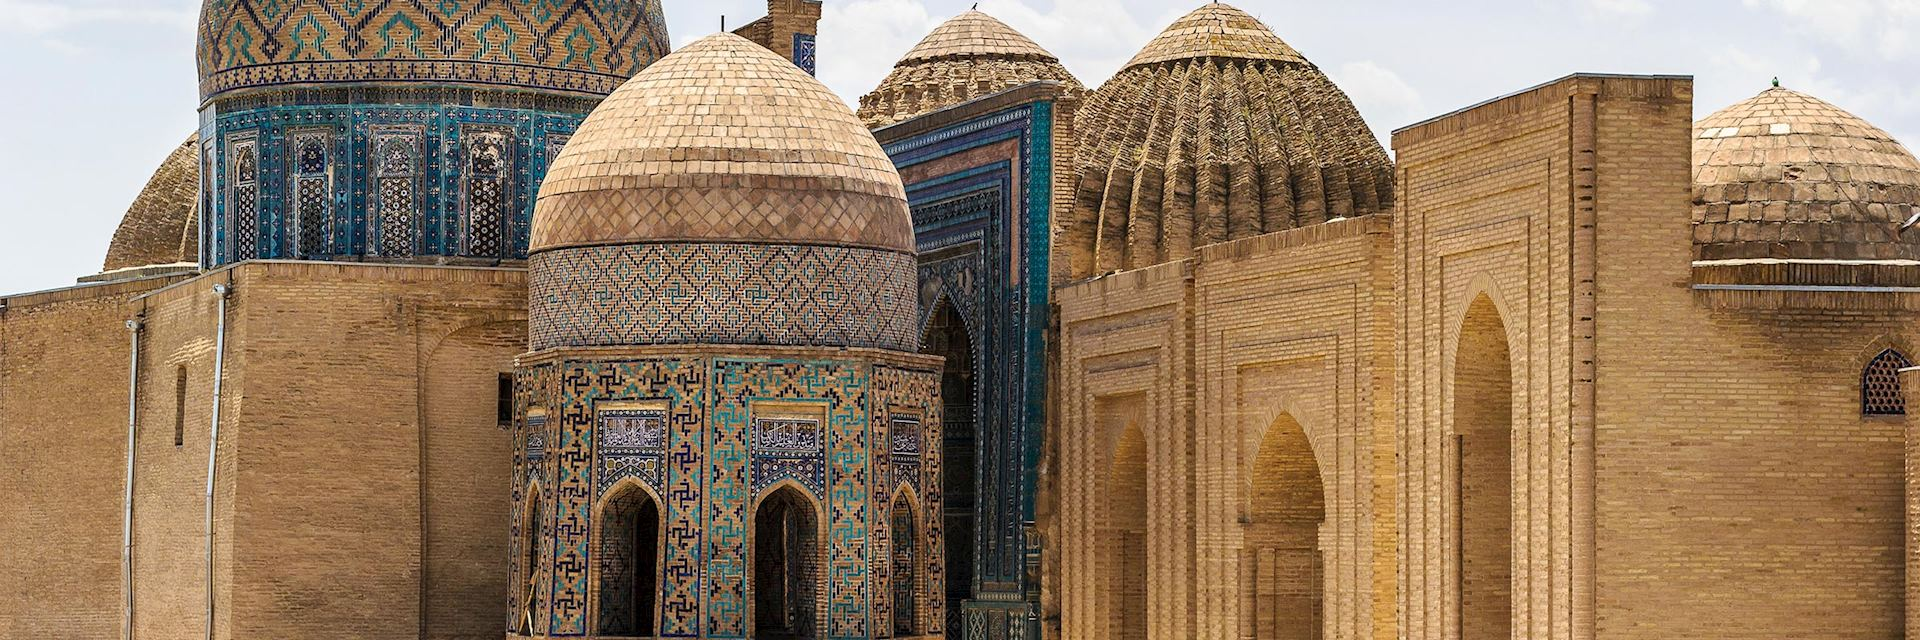 The Registan, Samarkand